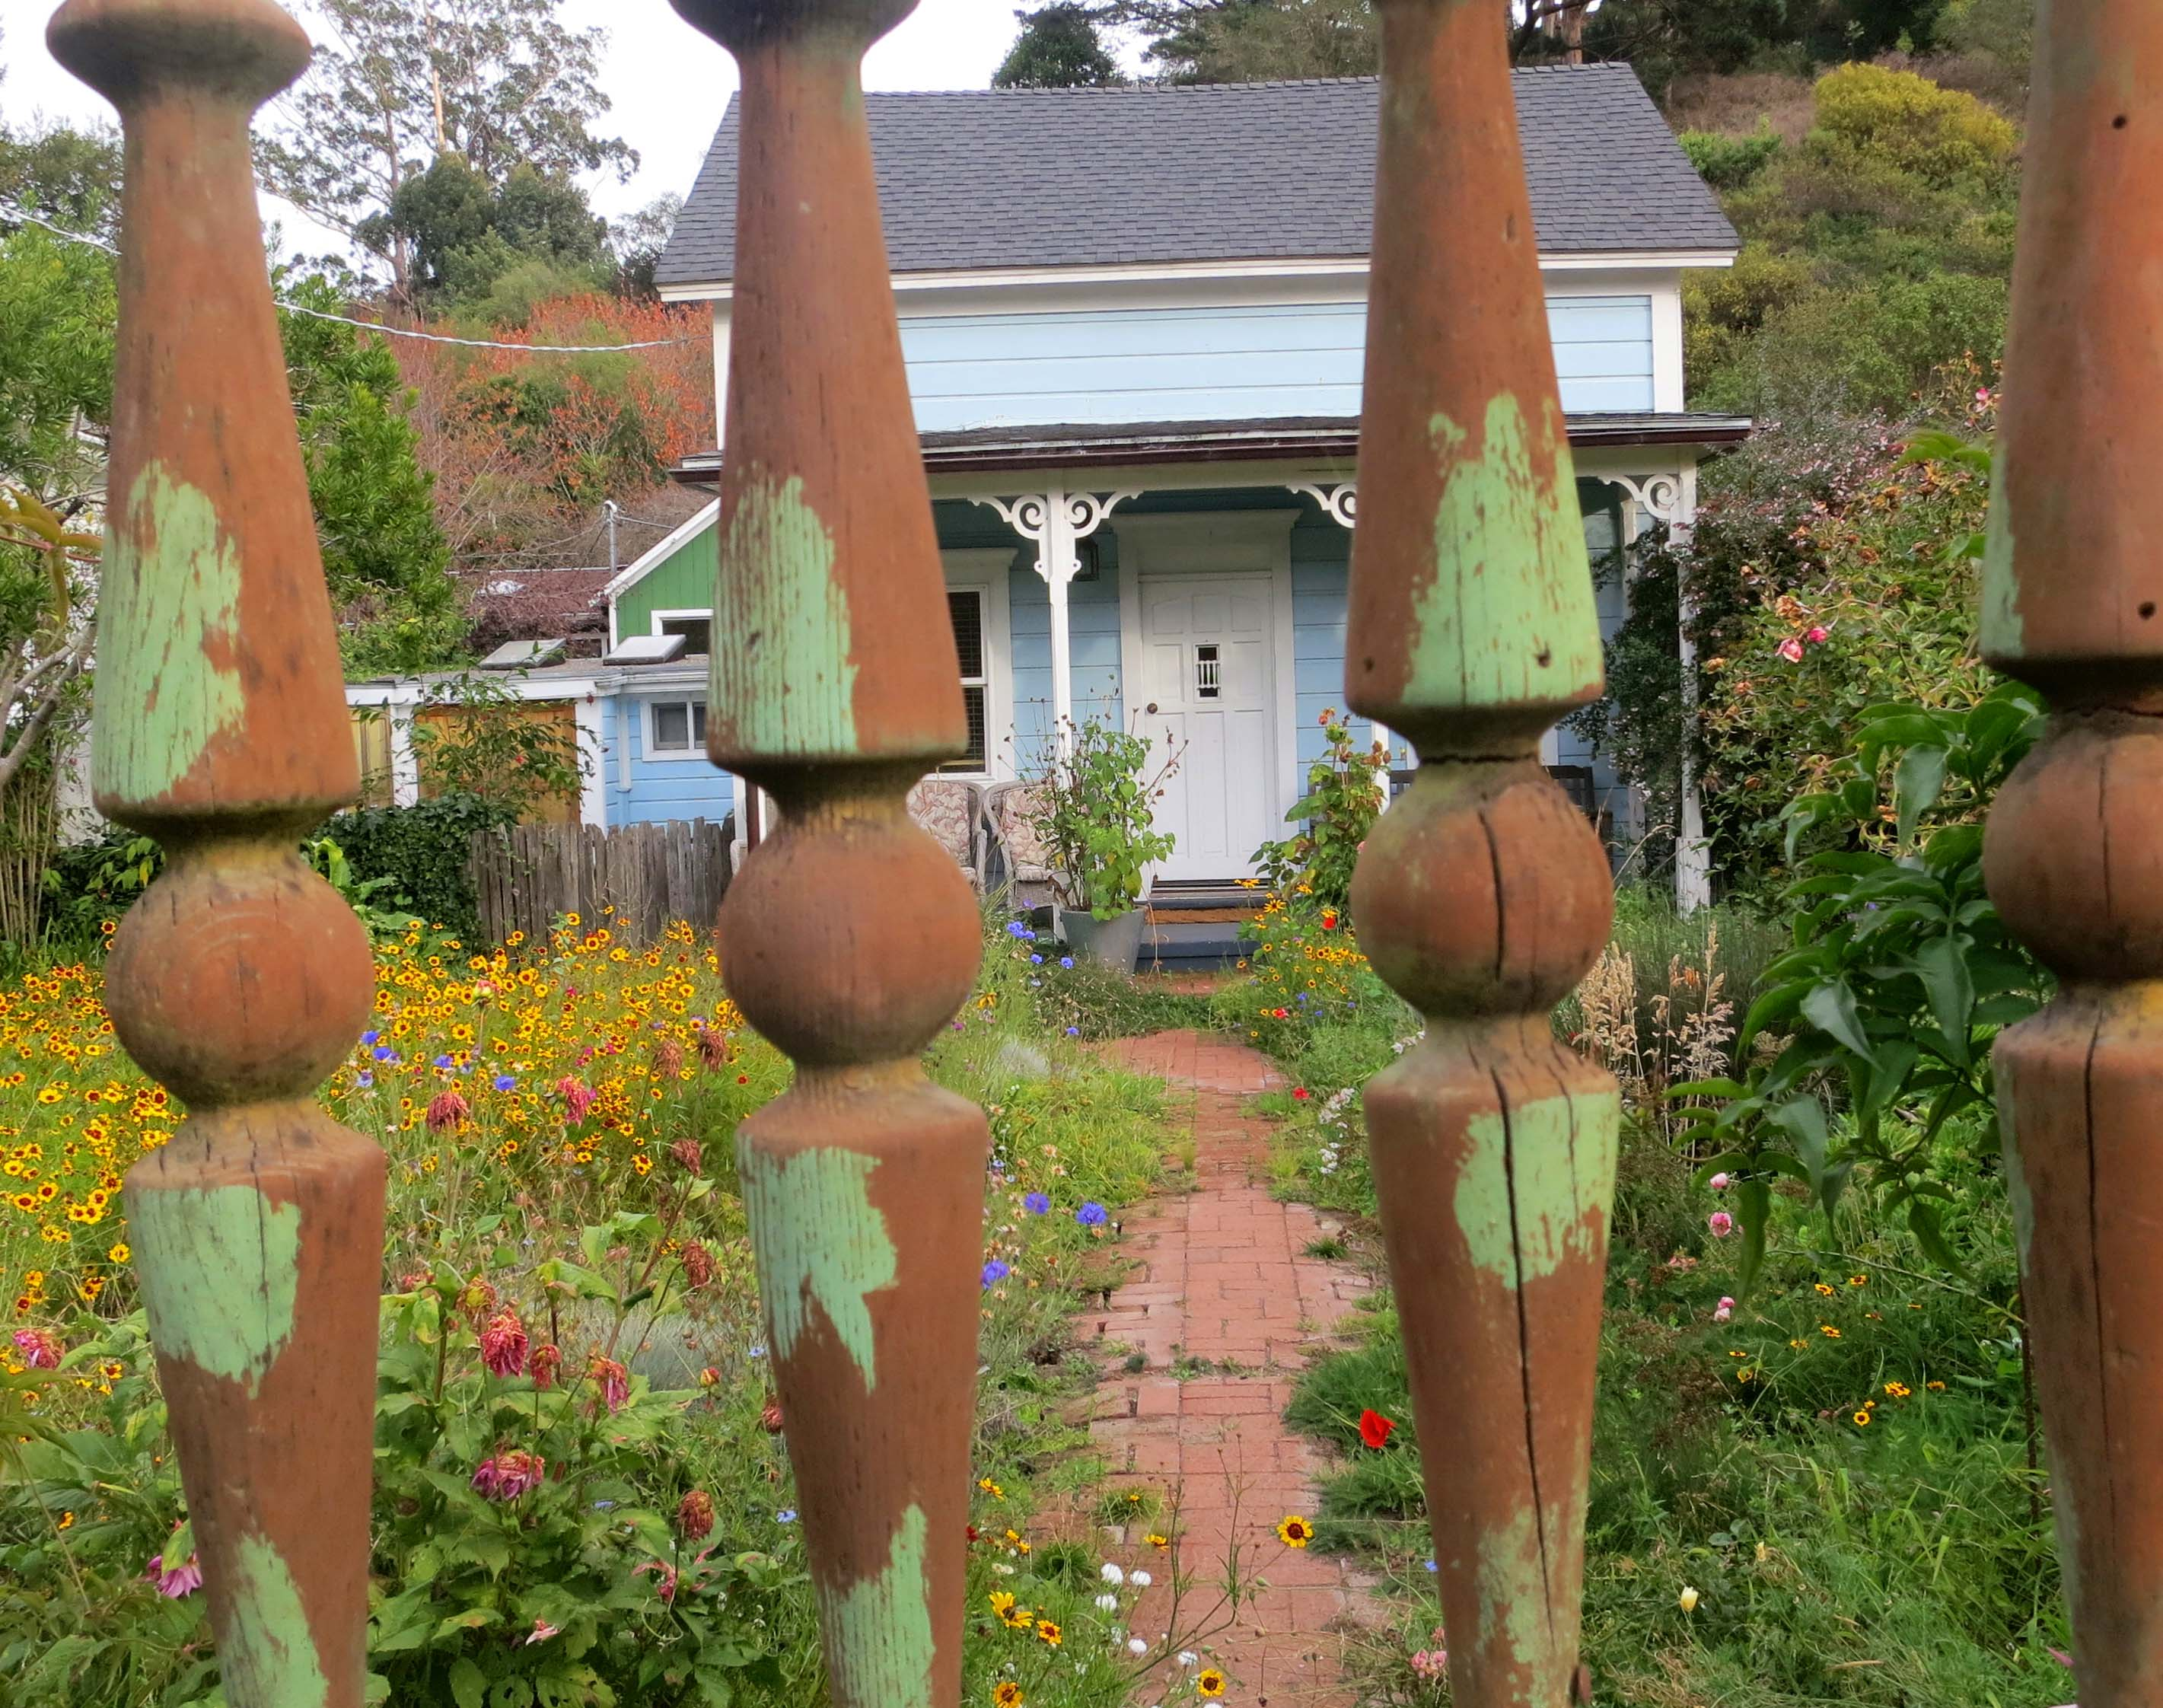 A home in the town of Bolinas, California. Photo by Curtis Mekemson.